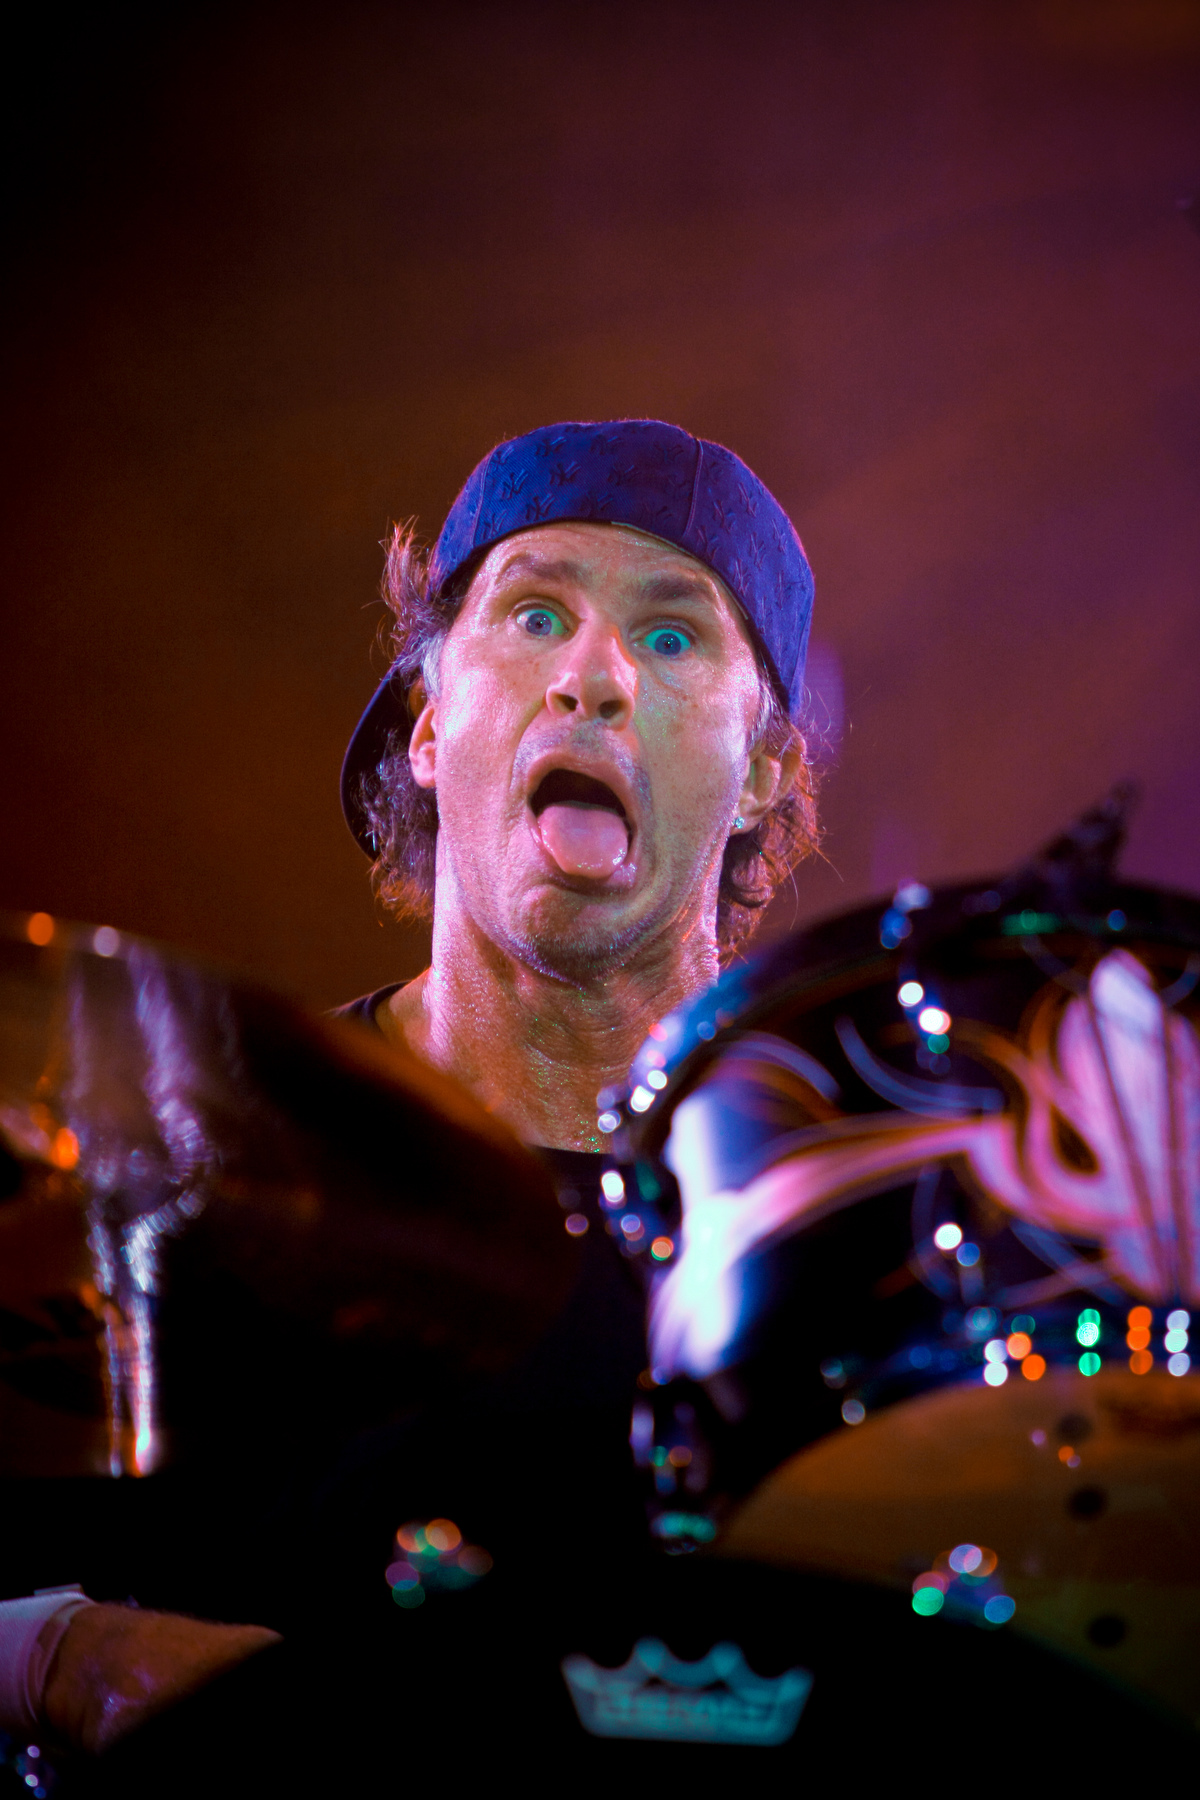 Chad Smith performing live